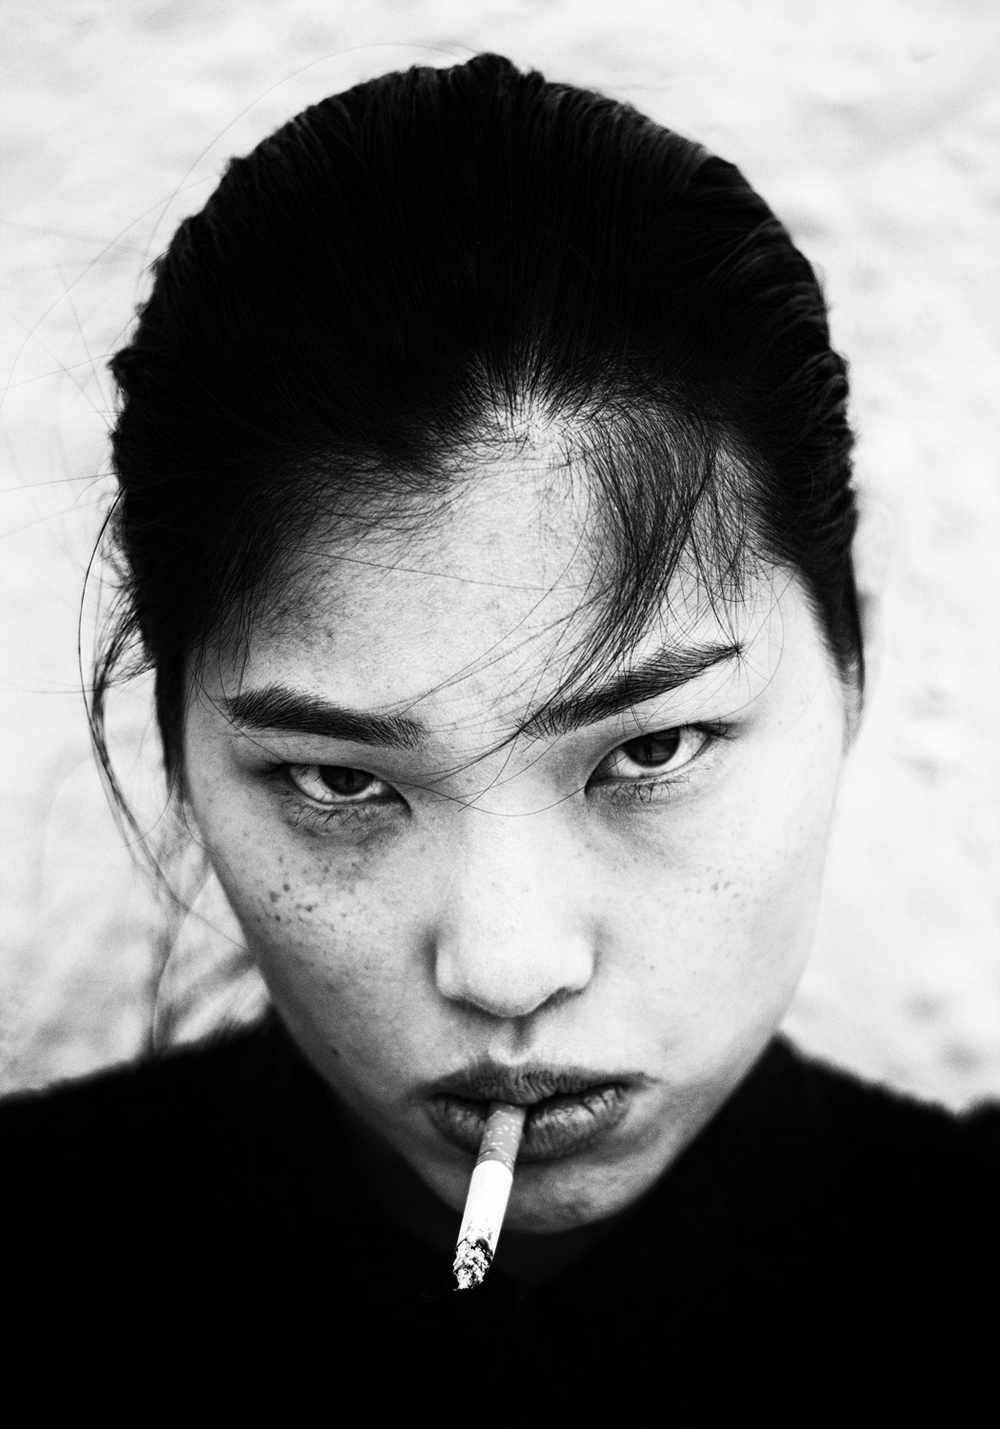 jackdavison: Stephanie Shiu shot in NYC.